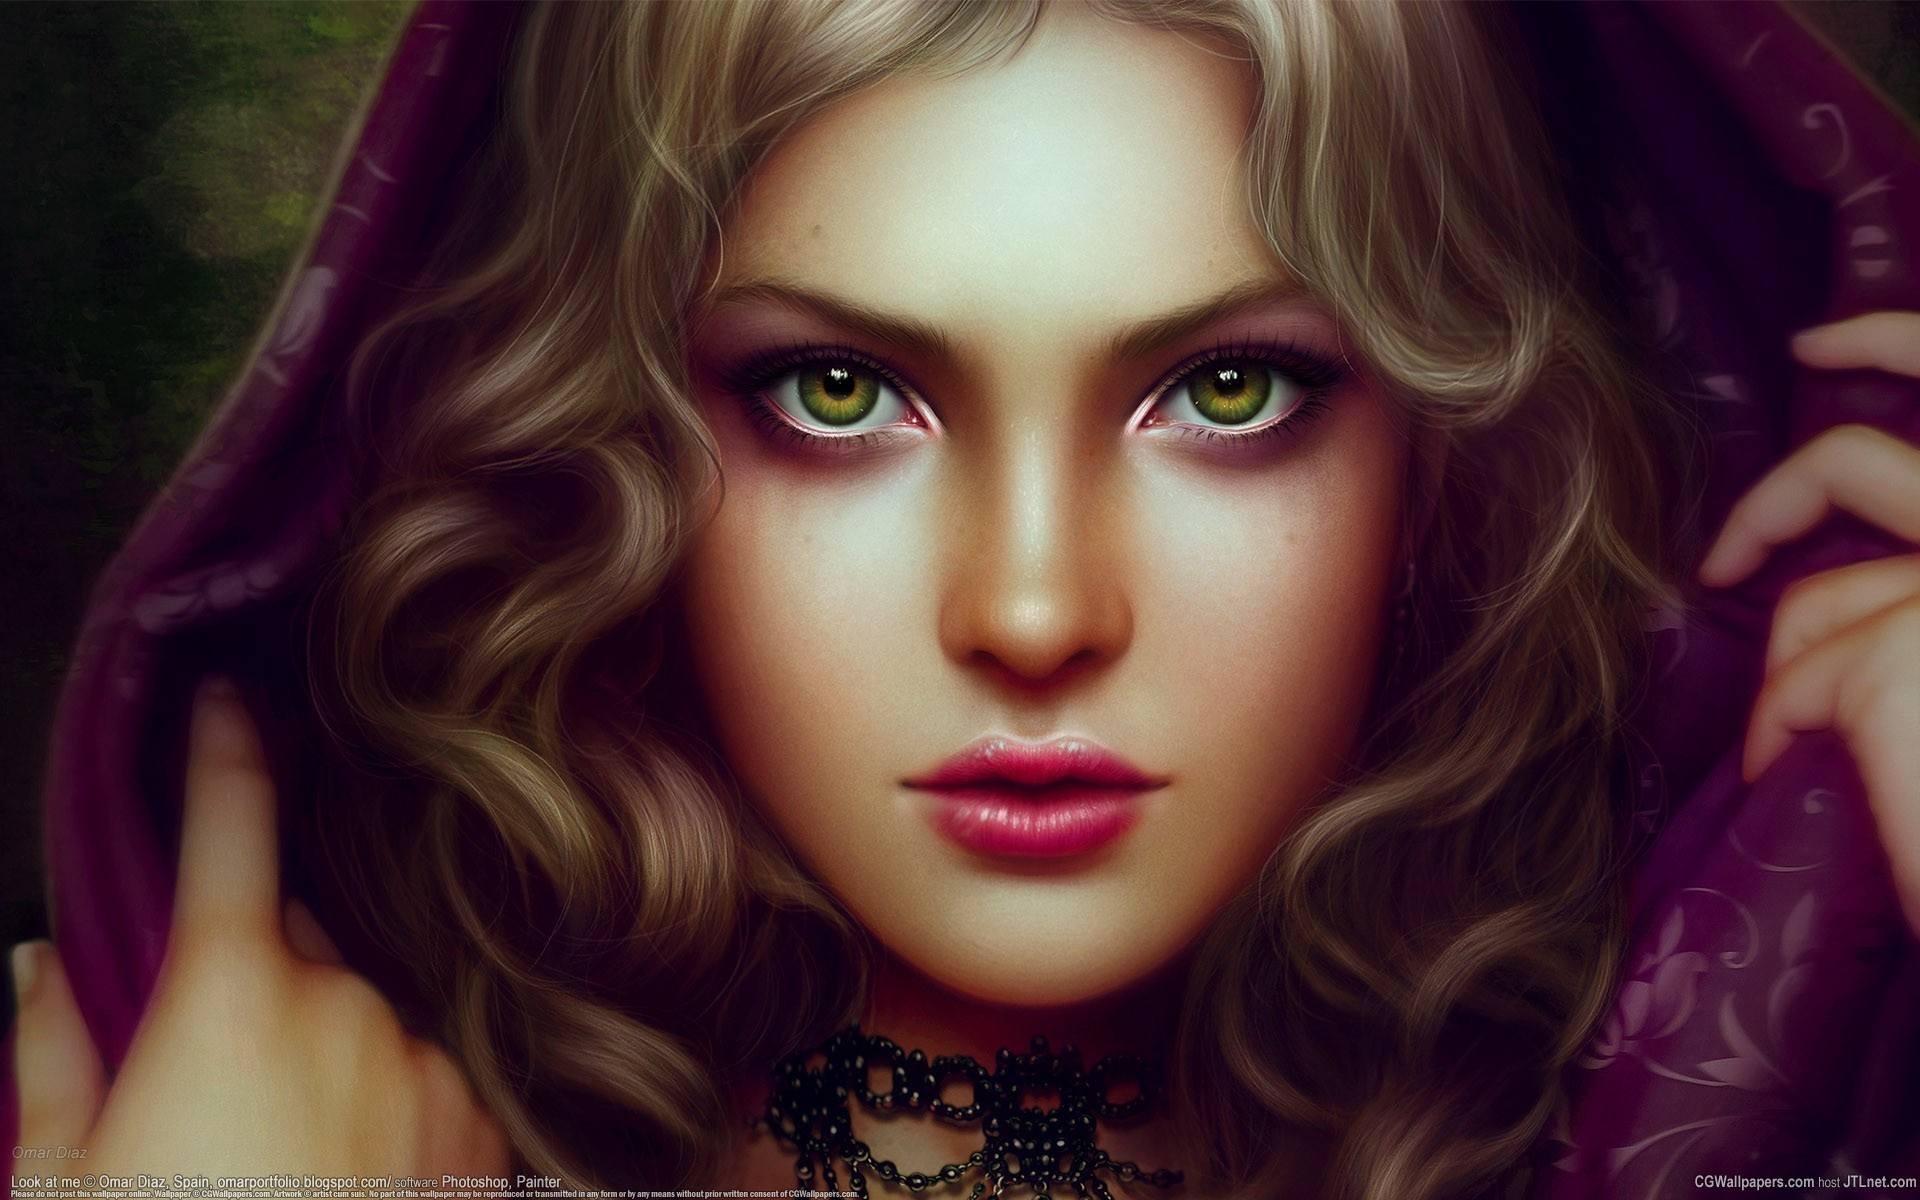 Wallpaper Green Eyes Fantasy Girl 1920x1200 Hd Picture Image